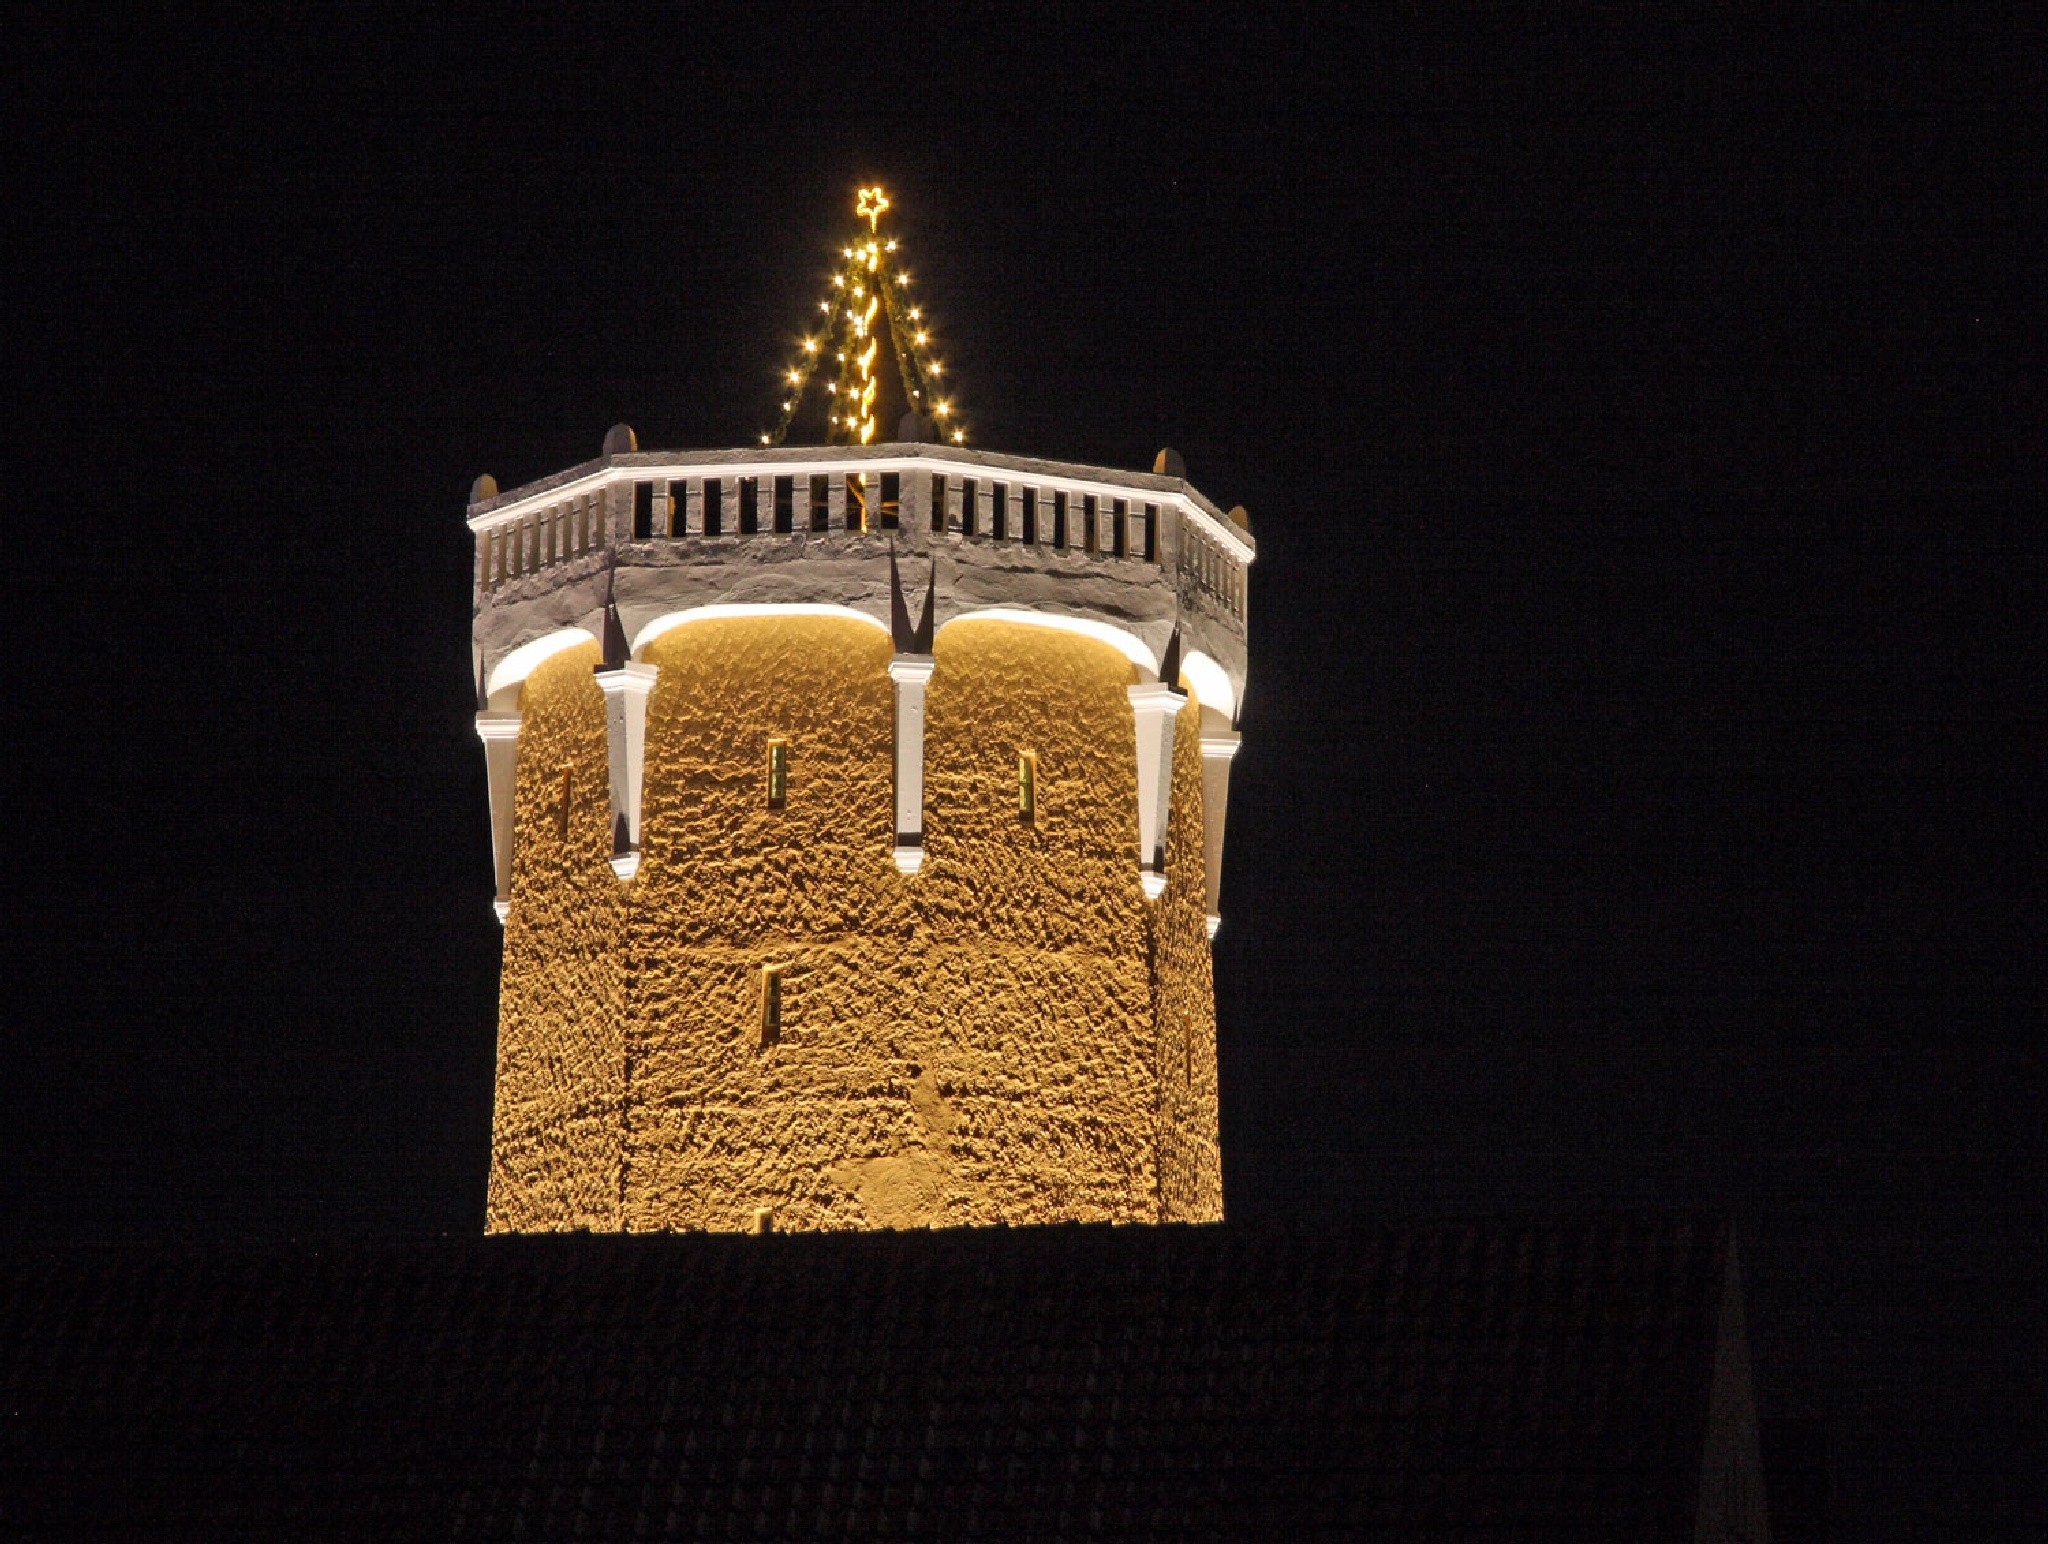 Tower and christmas tree by vedvejen